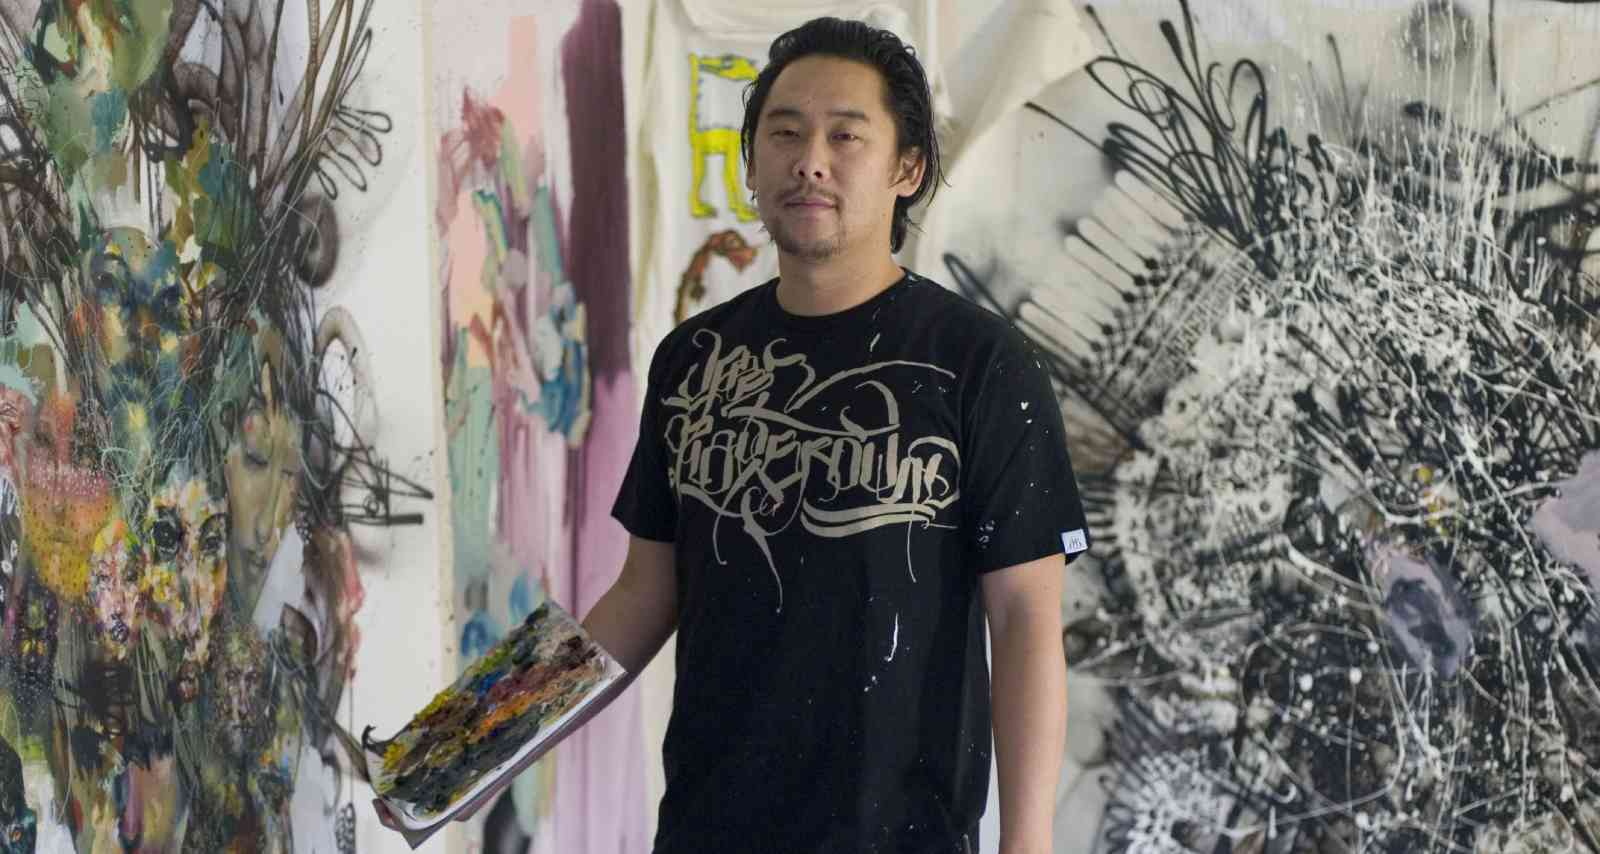 David Choe's Net Worth: The Street Artist's Facebook Story that Made Him Rich